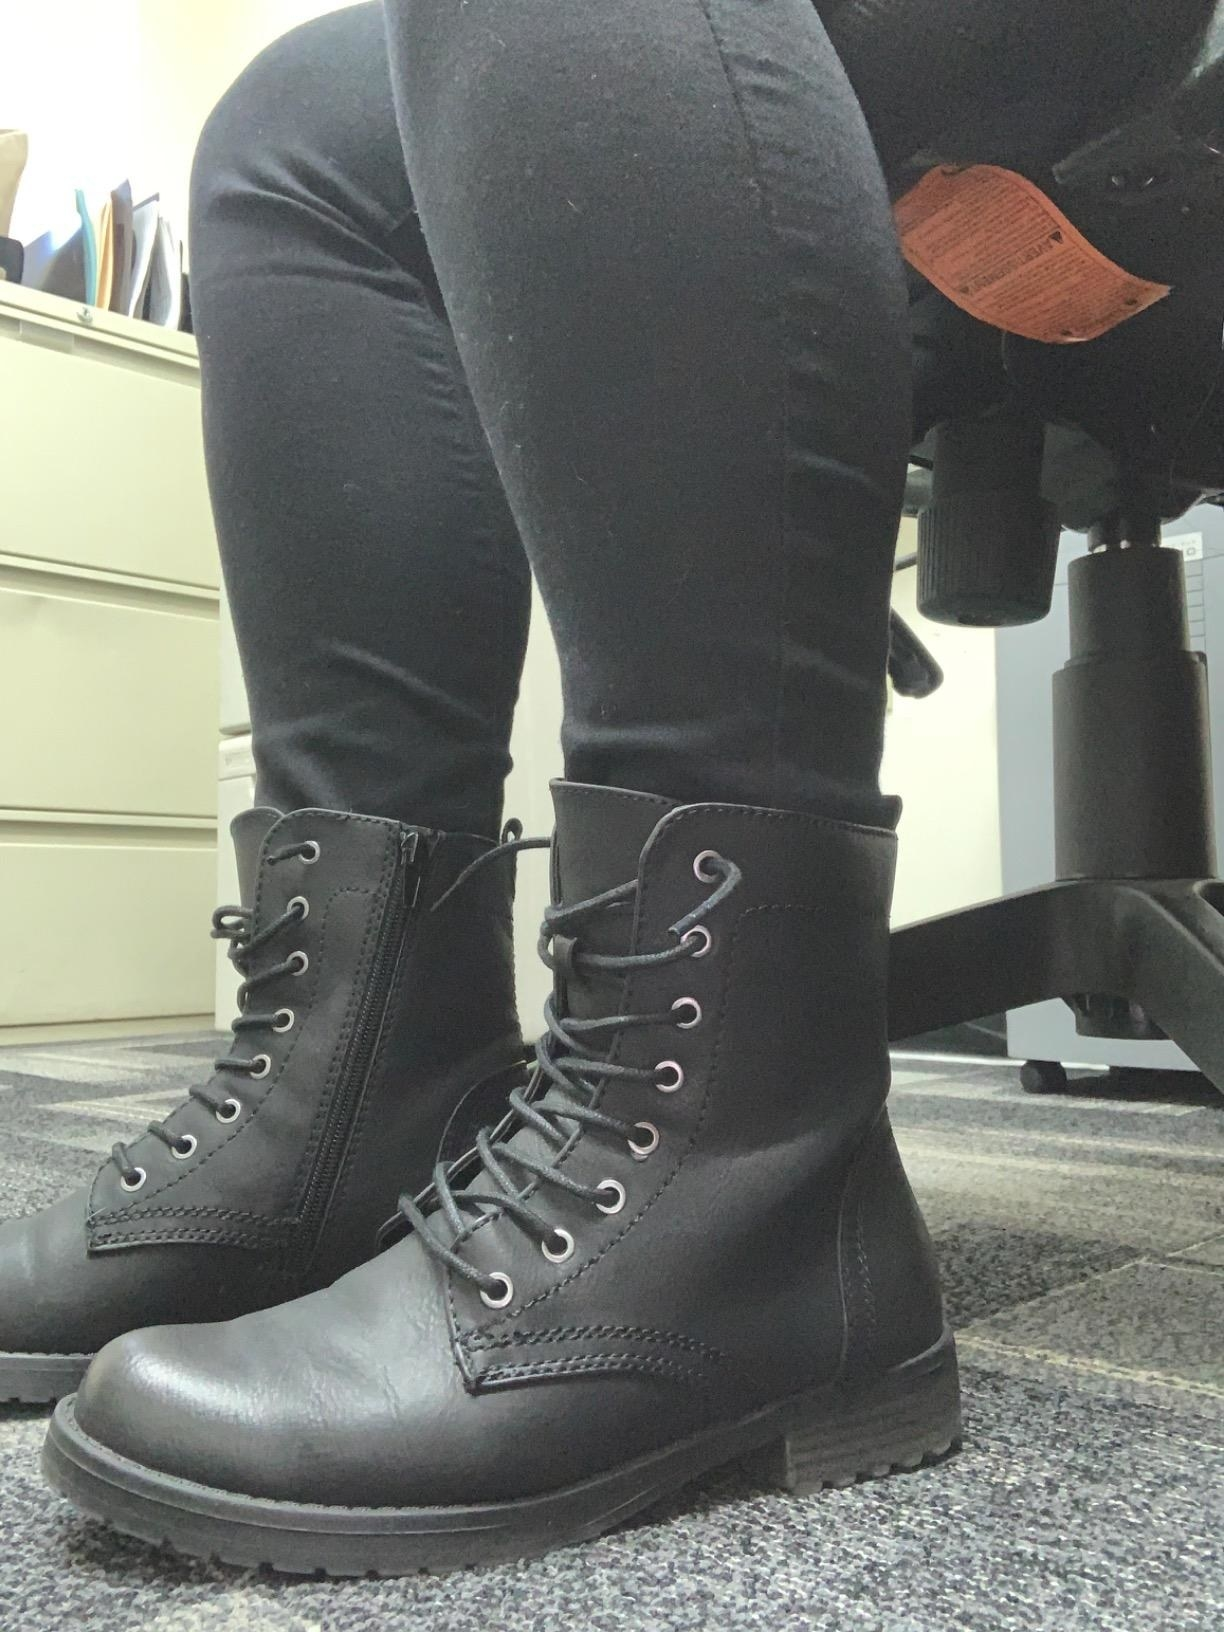 Reviewer's photo of their black combat boots